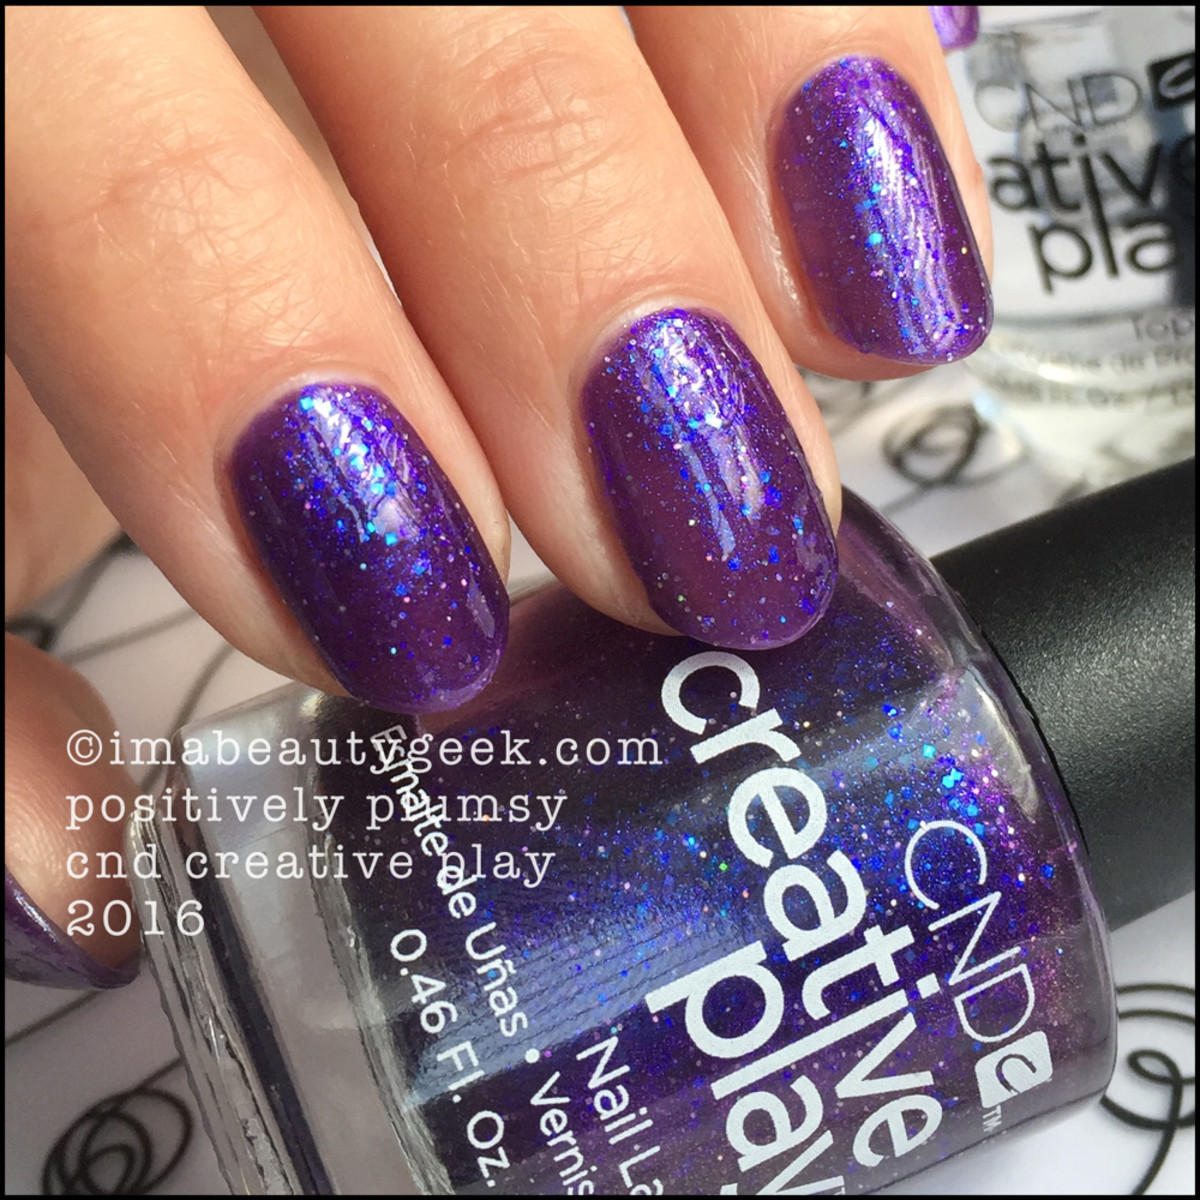 CND Creative Play Positively Plumsy_CND Creative Play Nail Polish Swatches